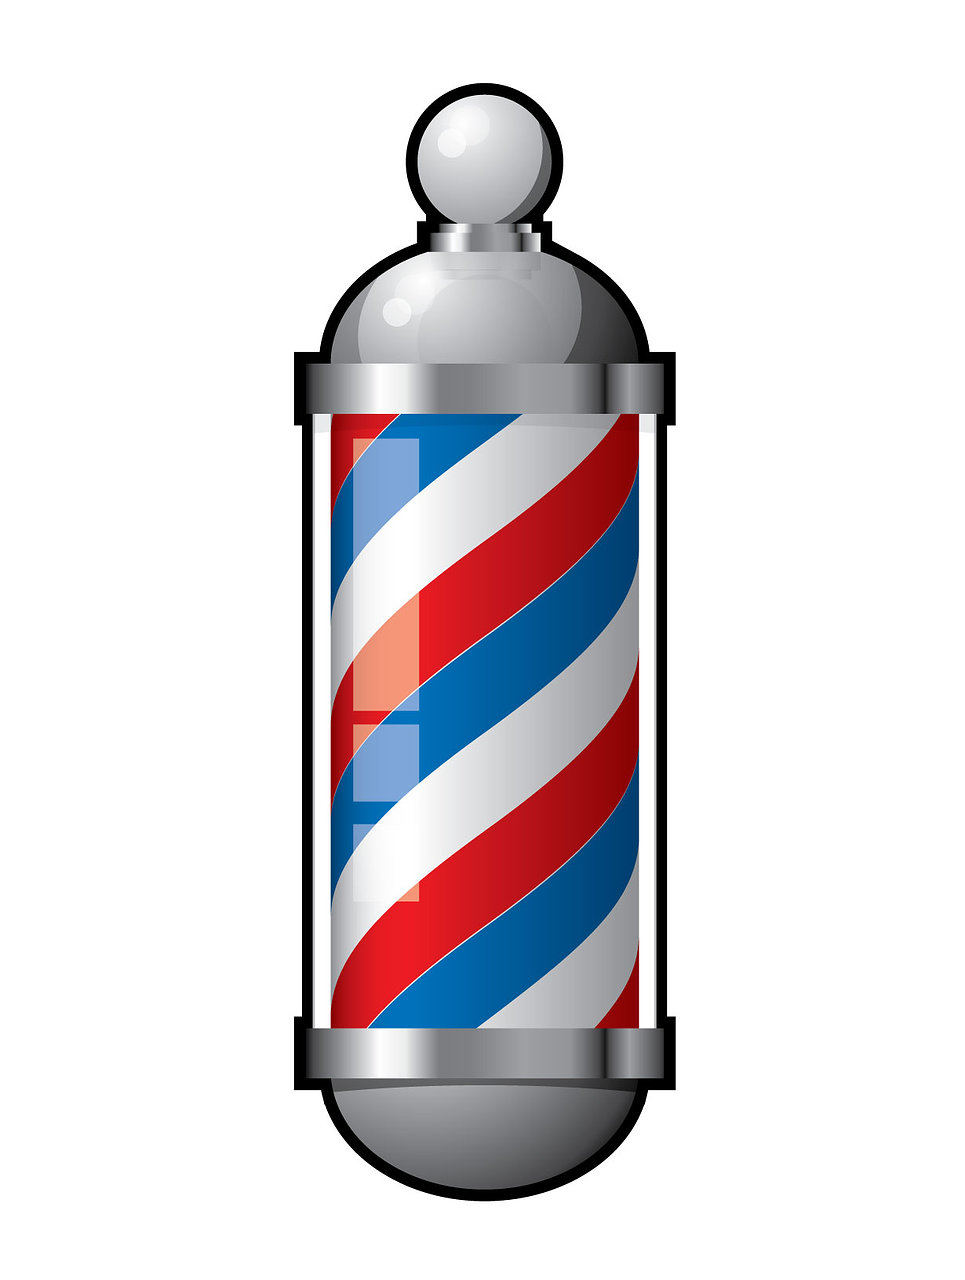 Image of a barber sign